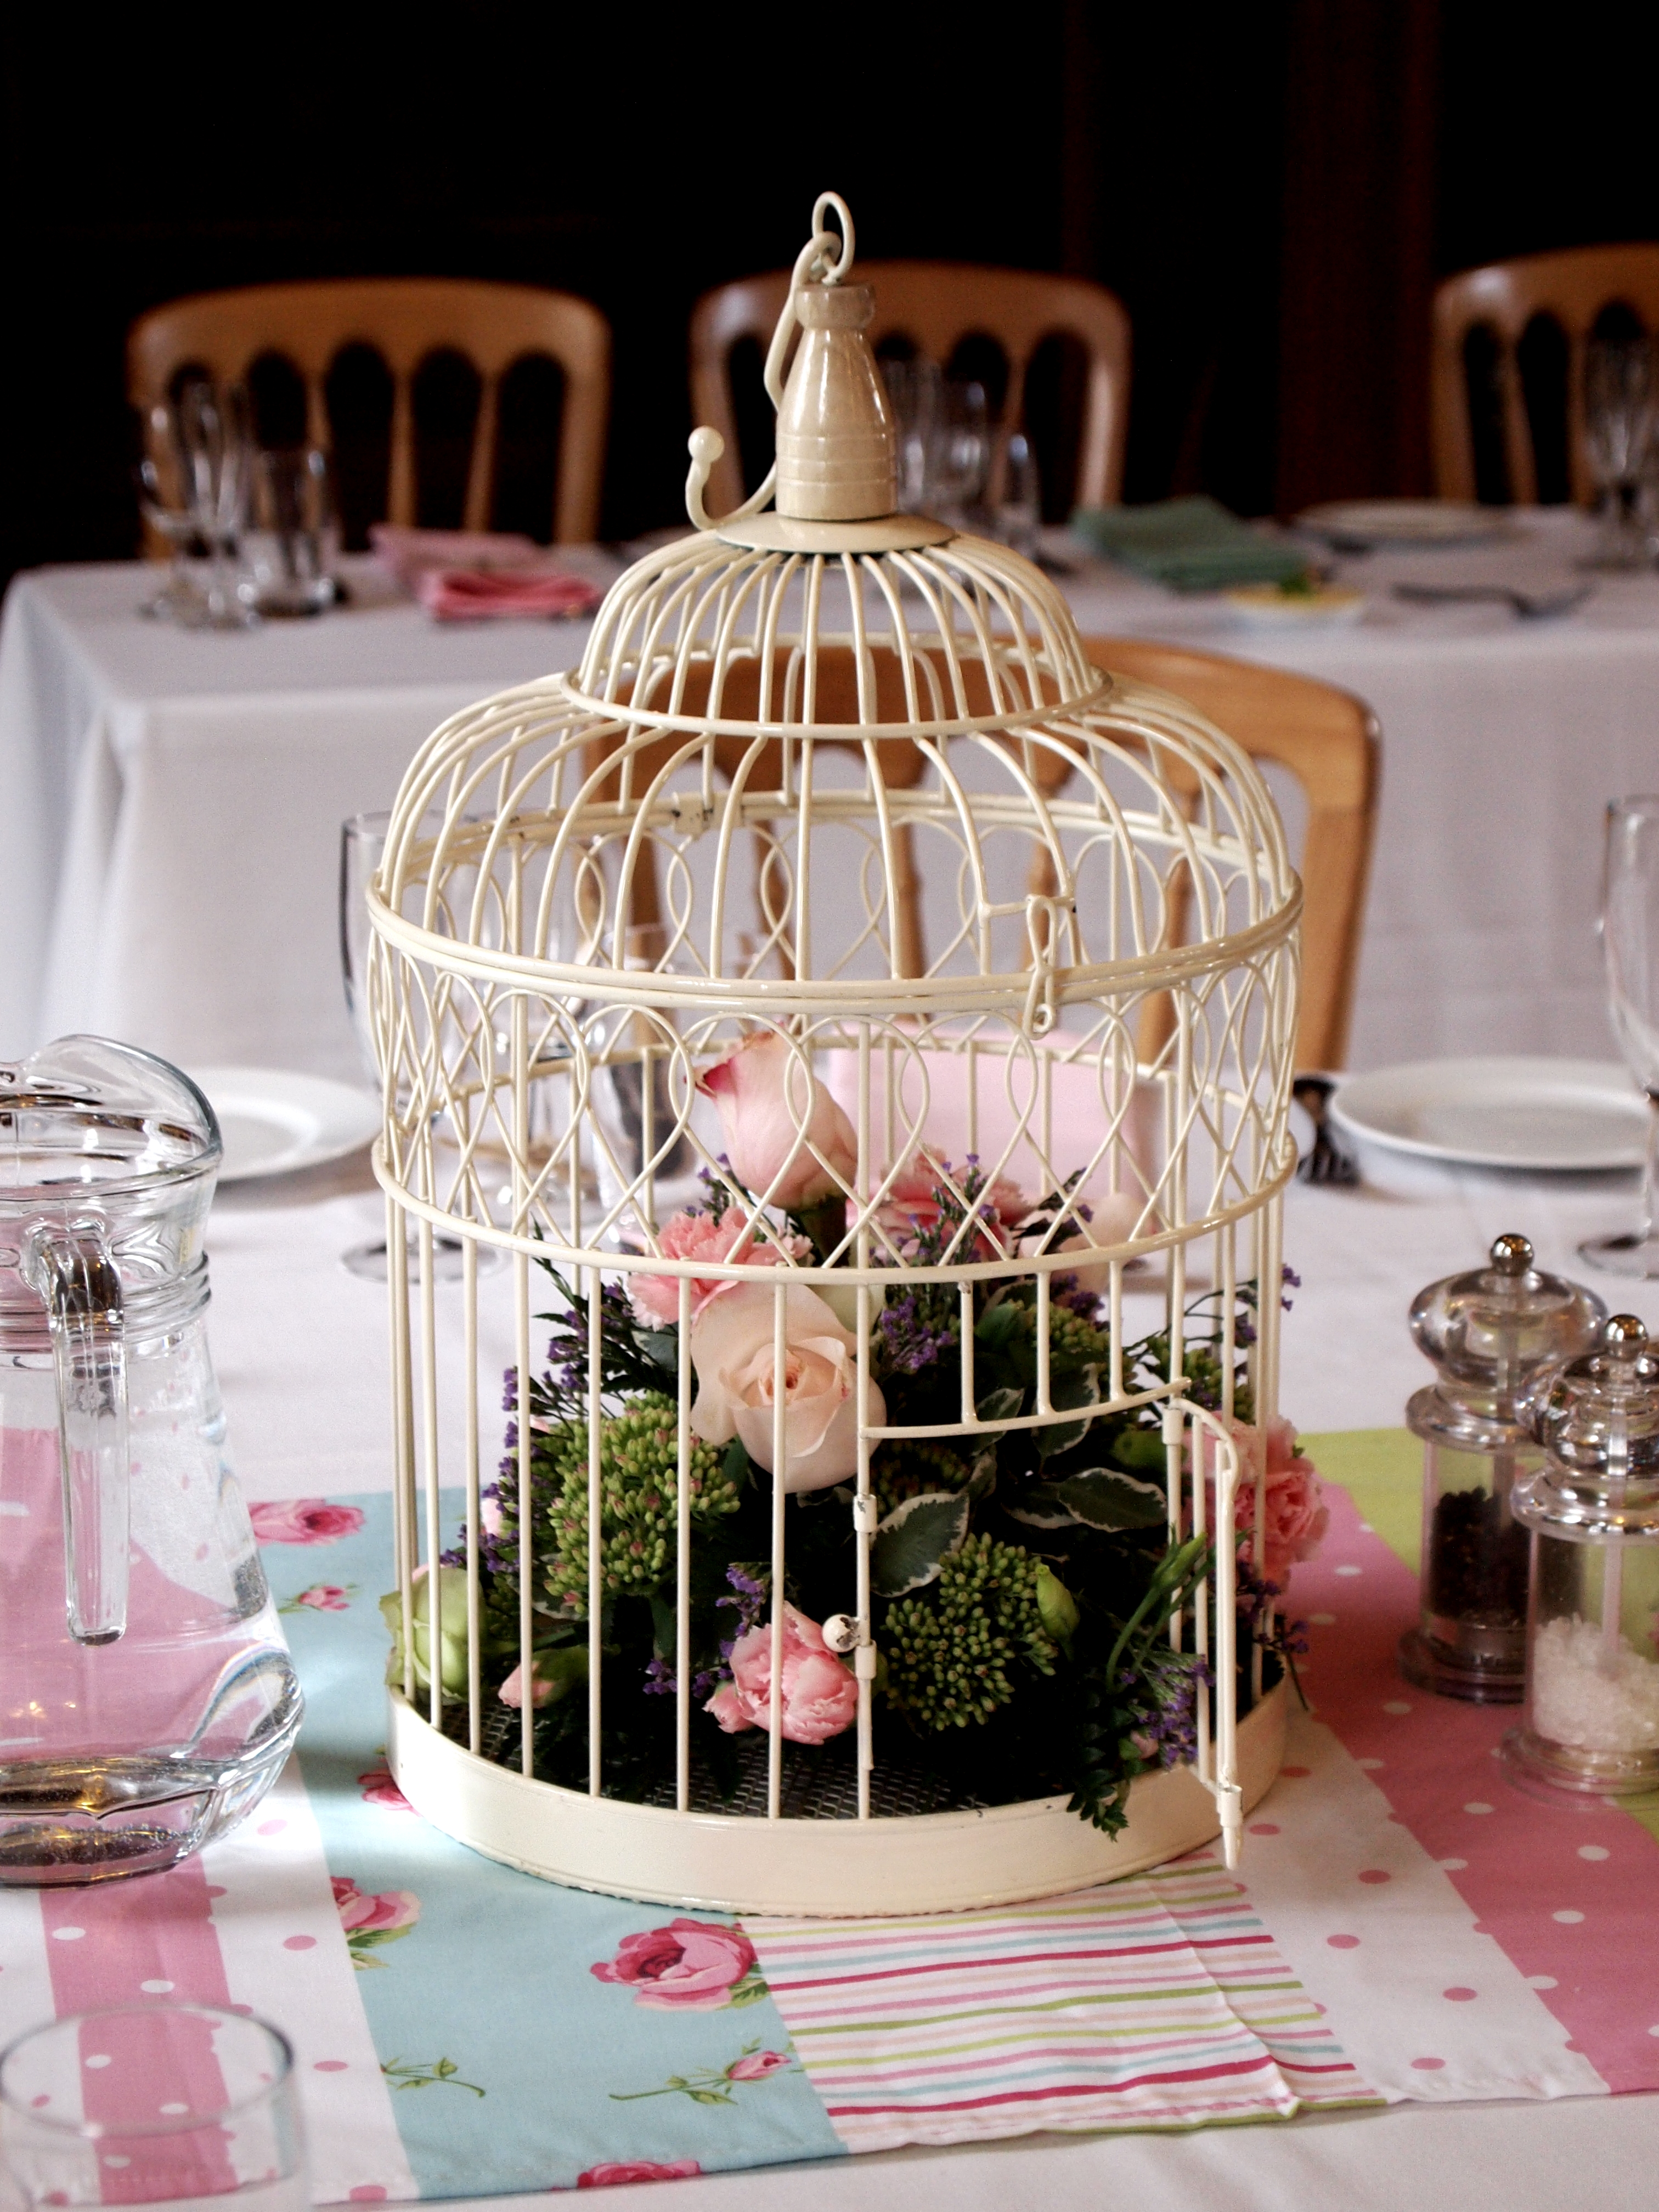 Birdhouse Wedding Decorations : Country charm wedding ? bird cage table decoration